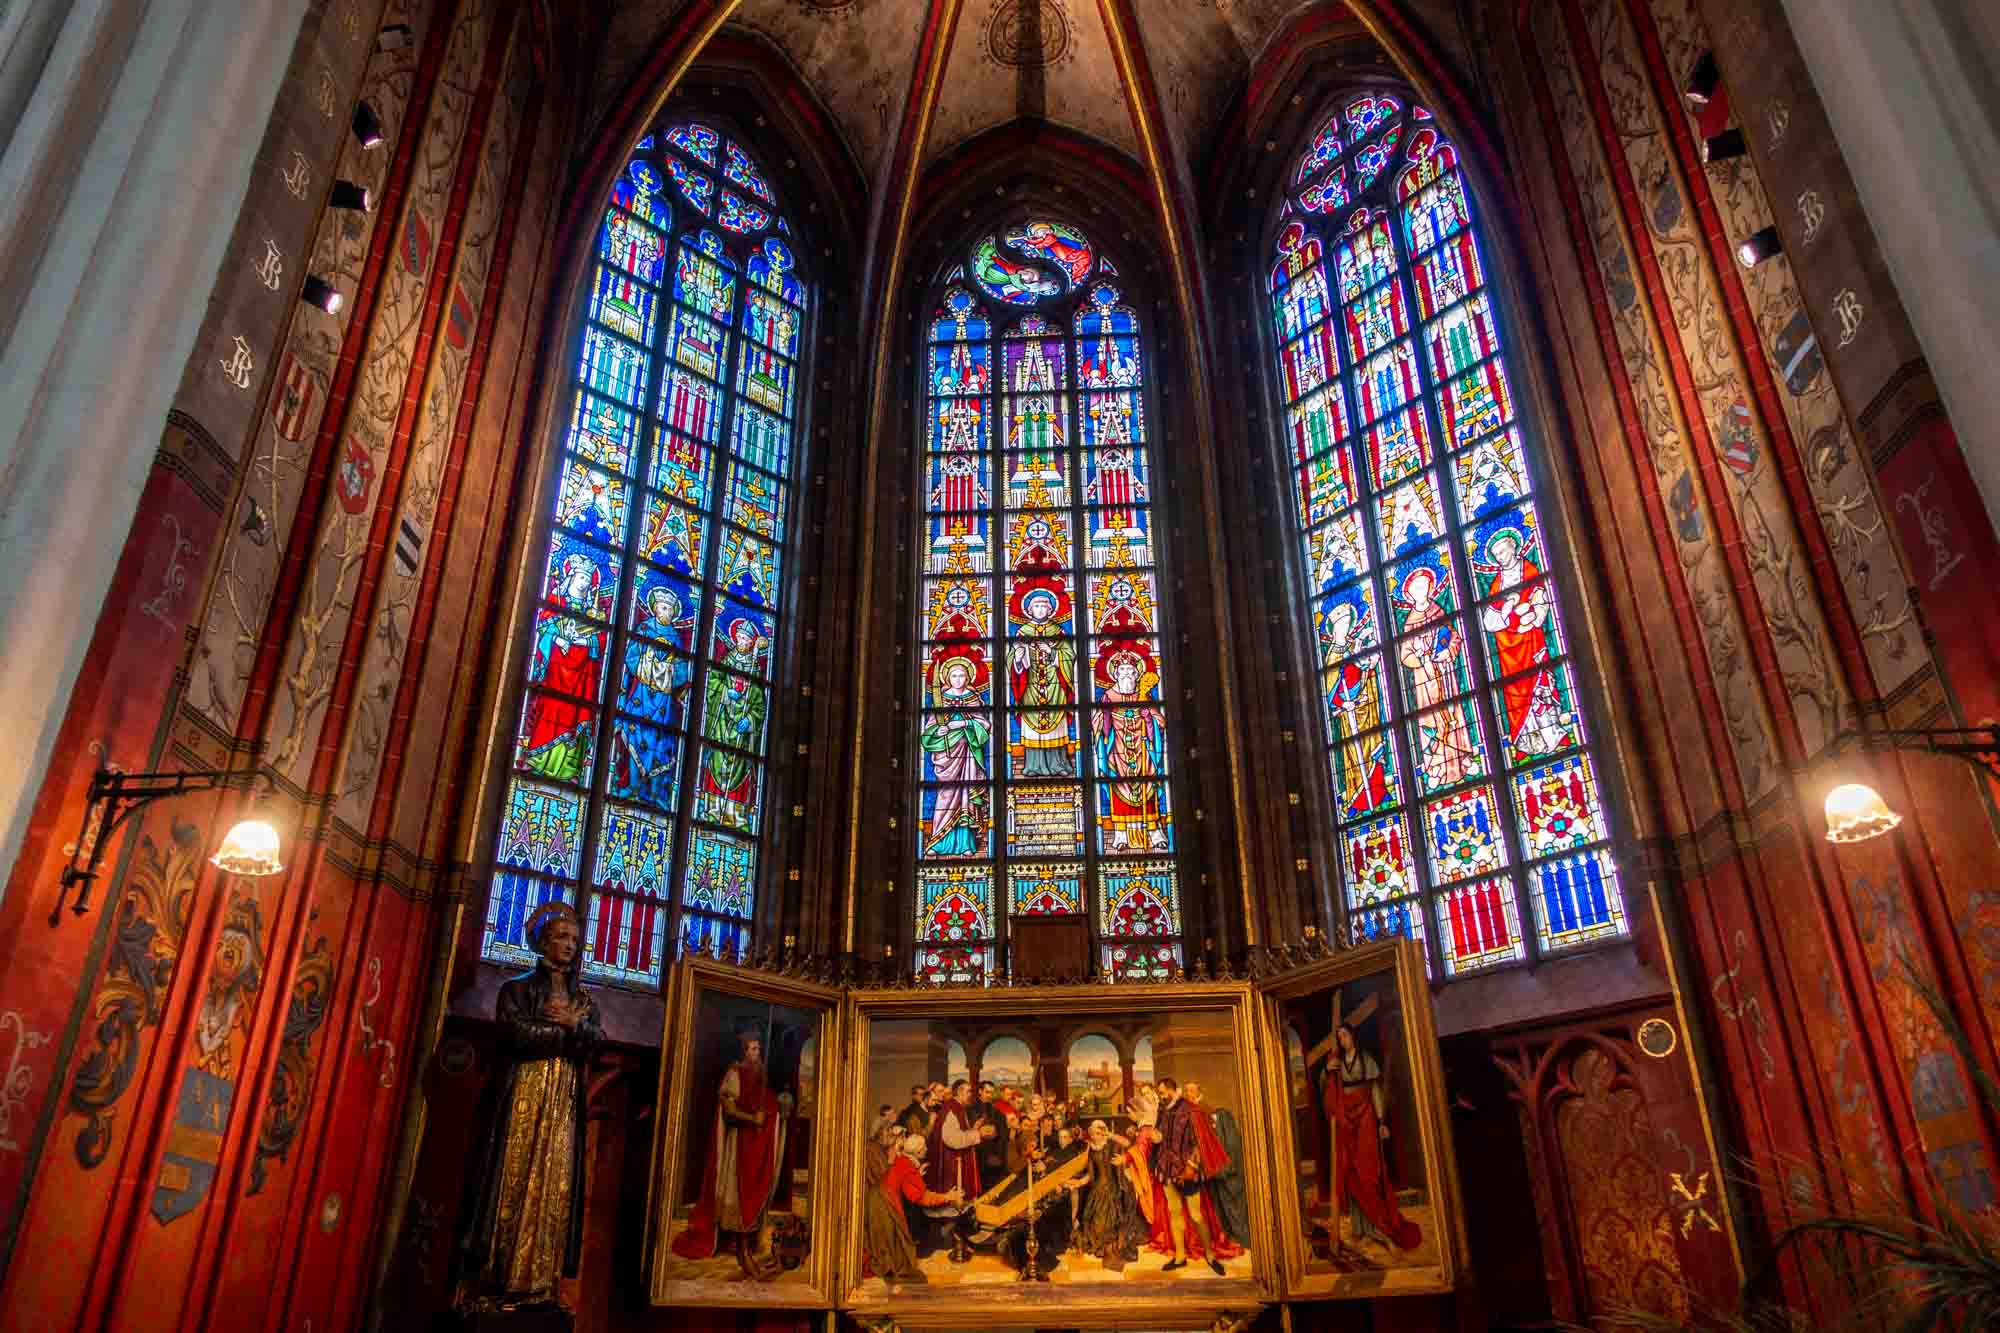 Stained glass and art in a cathedral